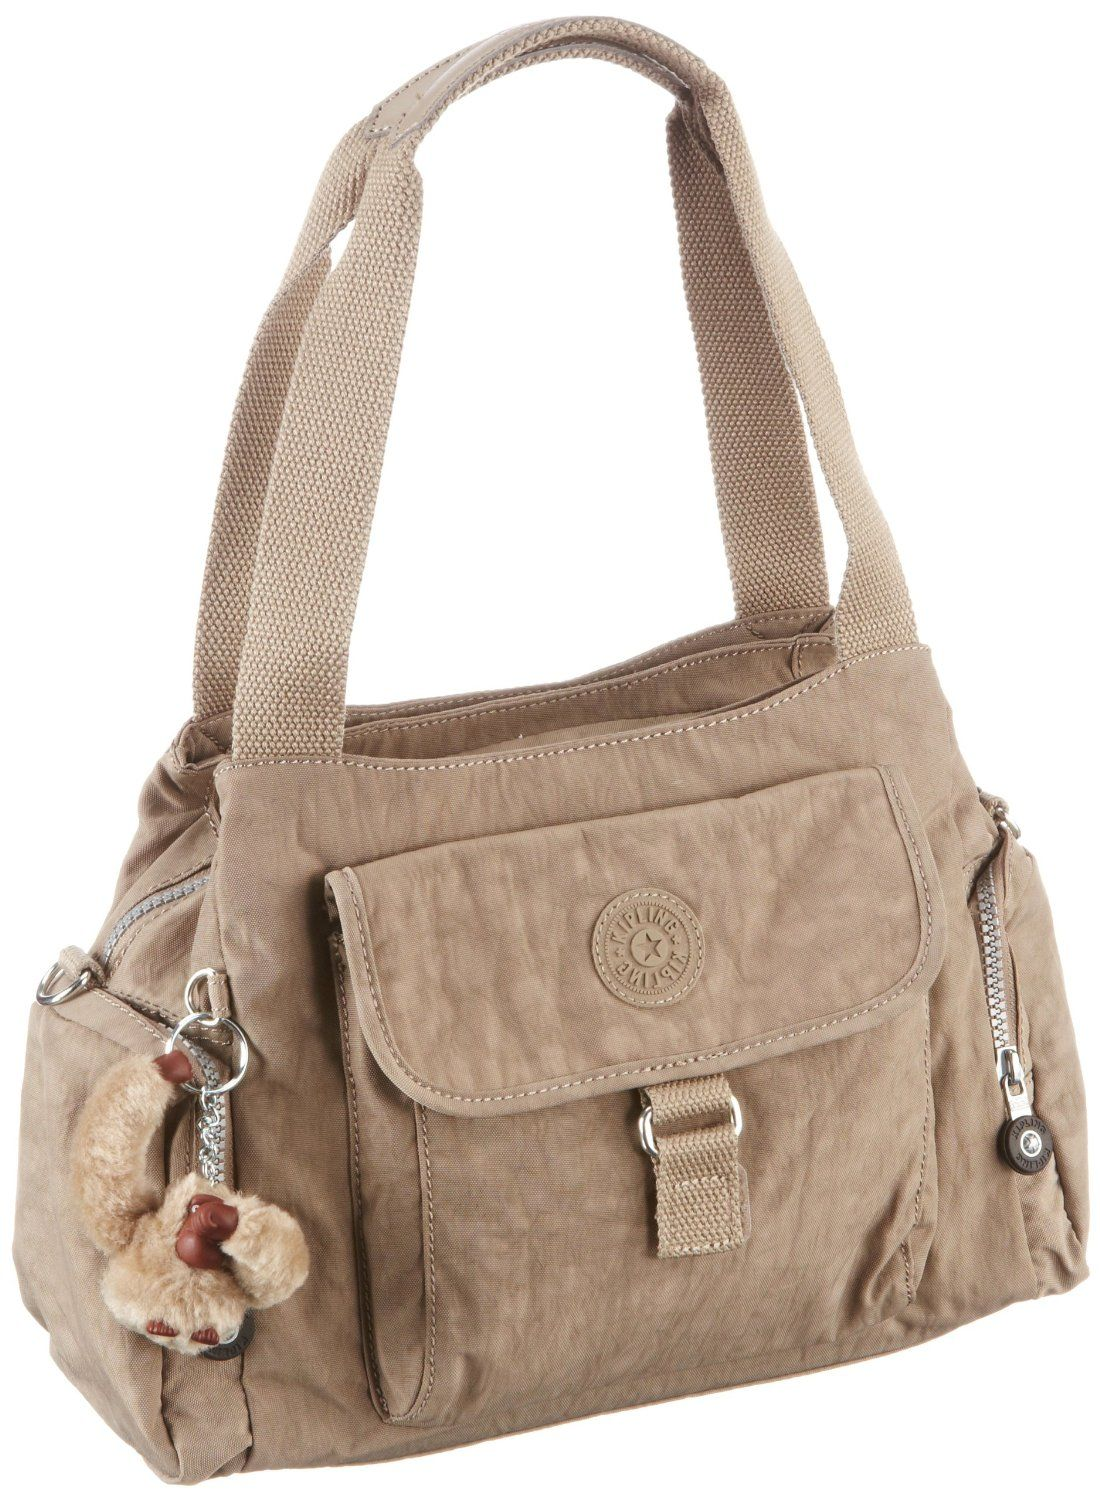 Kipling Women's Fairfax L Large Shoulder Bag: Amazon.co.uk: Shoes ...